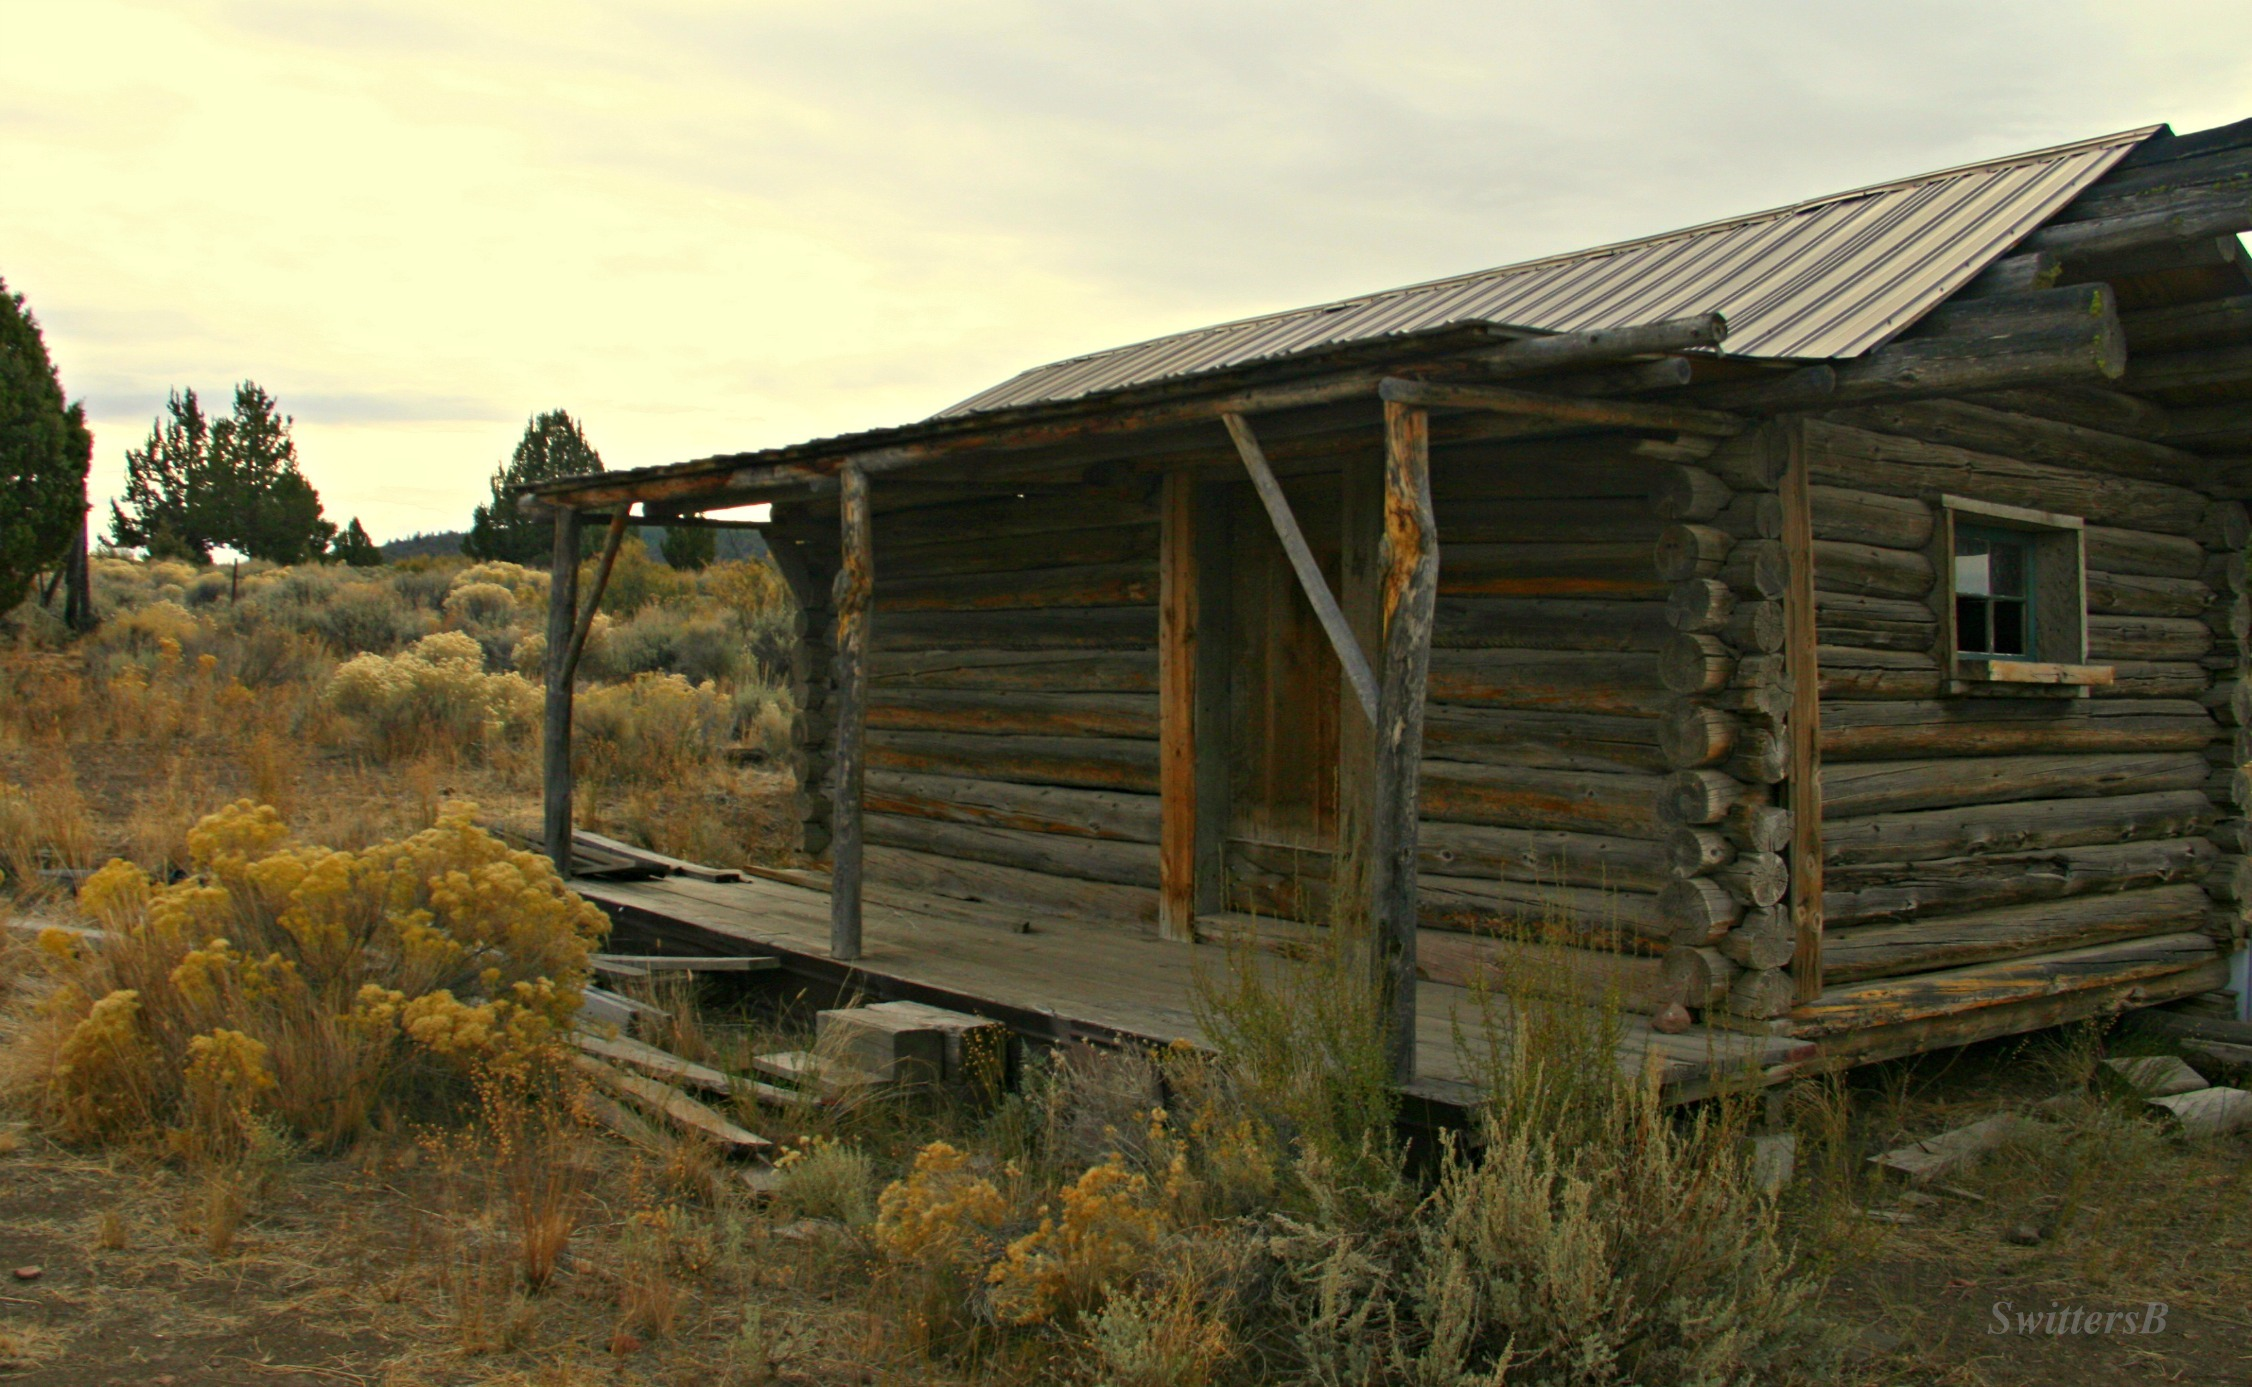 Marvelous photograph of Photography: Log Cabin & History Too SwittersB & Exploring with #9D9D2E color and 2252x1387 pixels